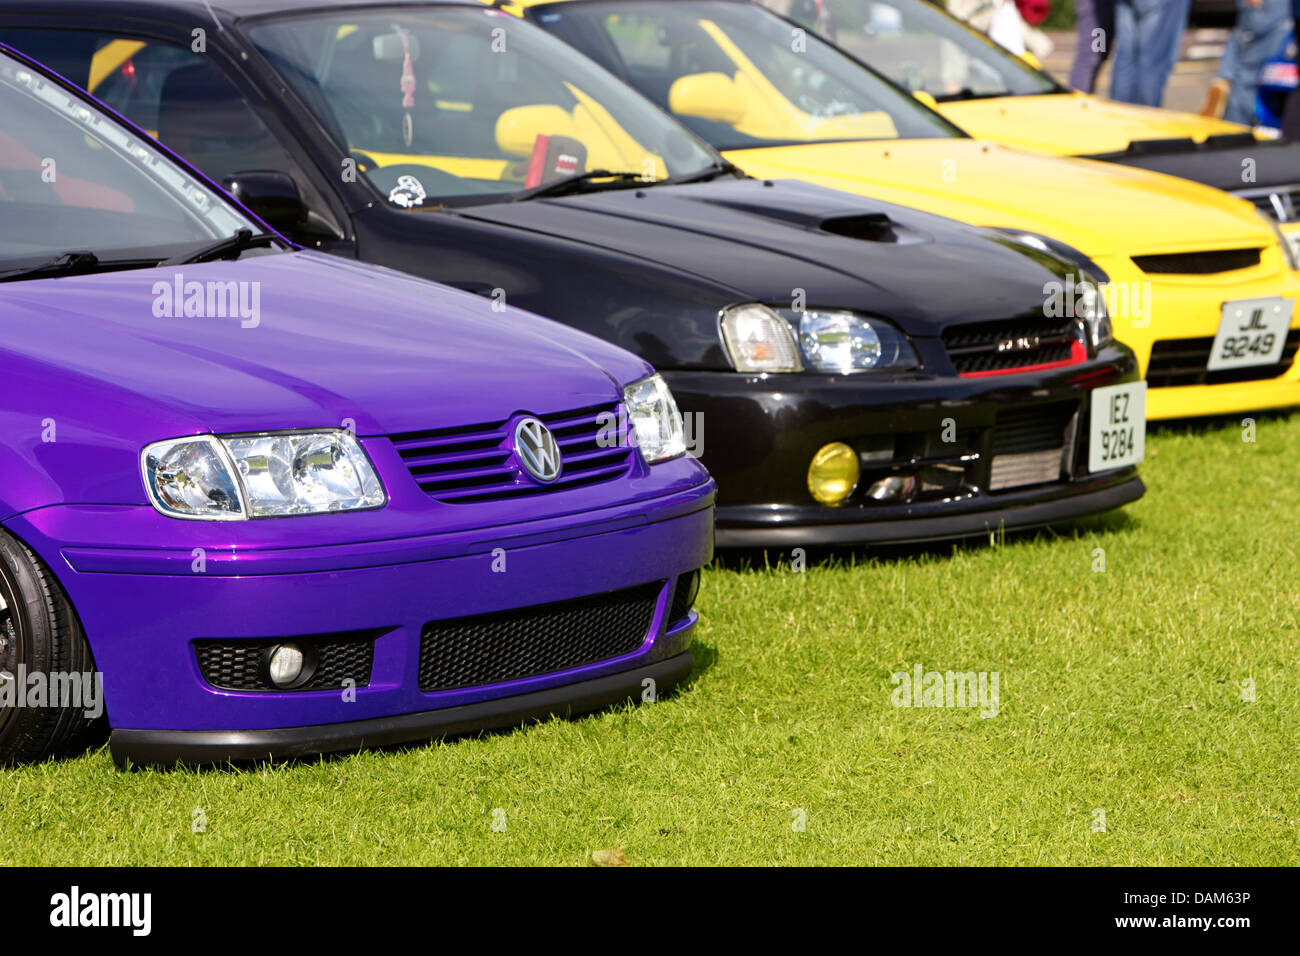 performance modified lowered car show meet in the uk - Stock Image